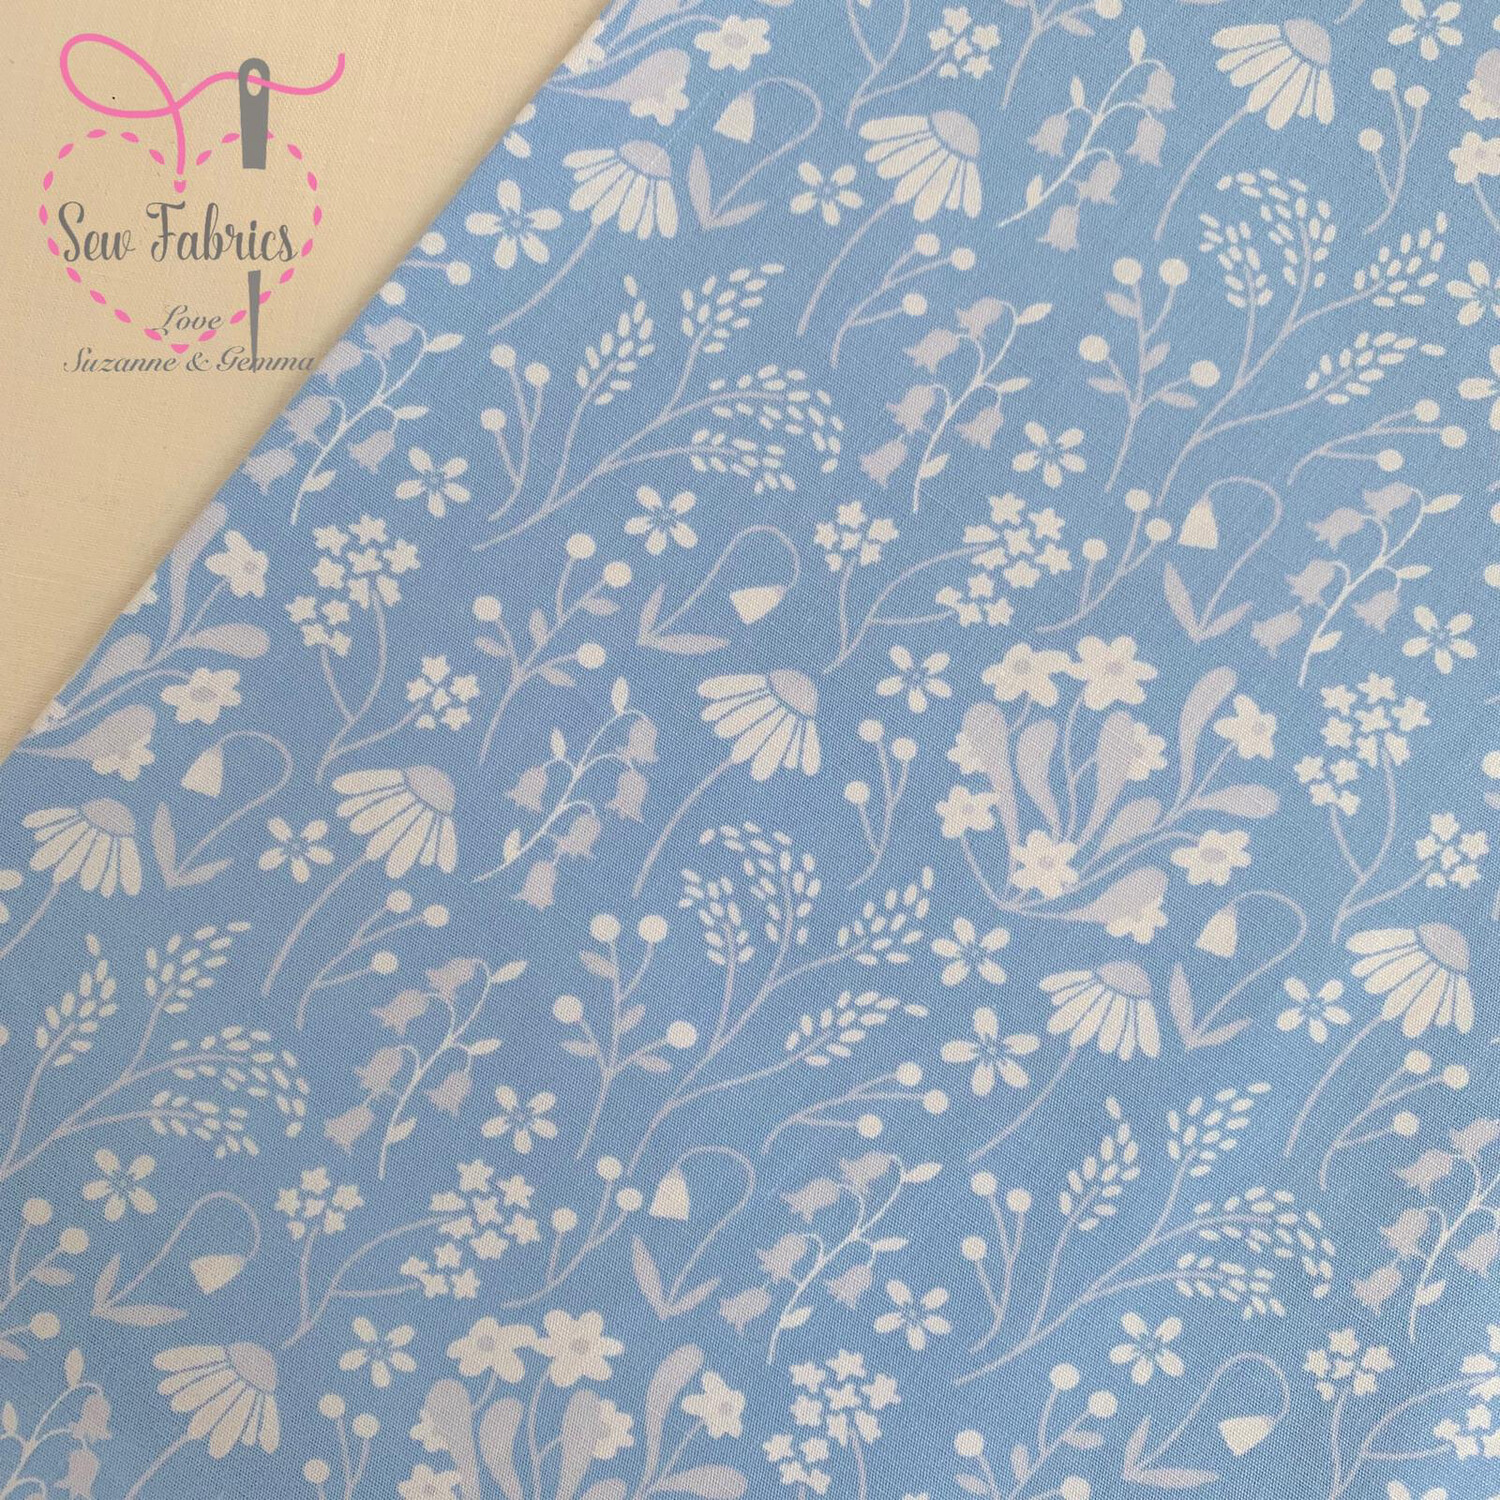 Rose & Hubble Blue Wildflower Floral Fabric 100% Cotton Poplin